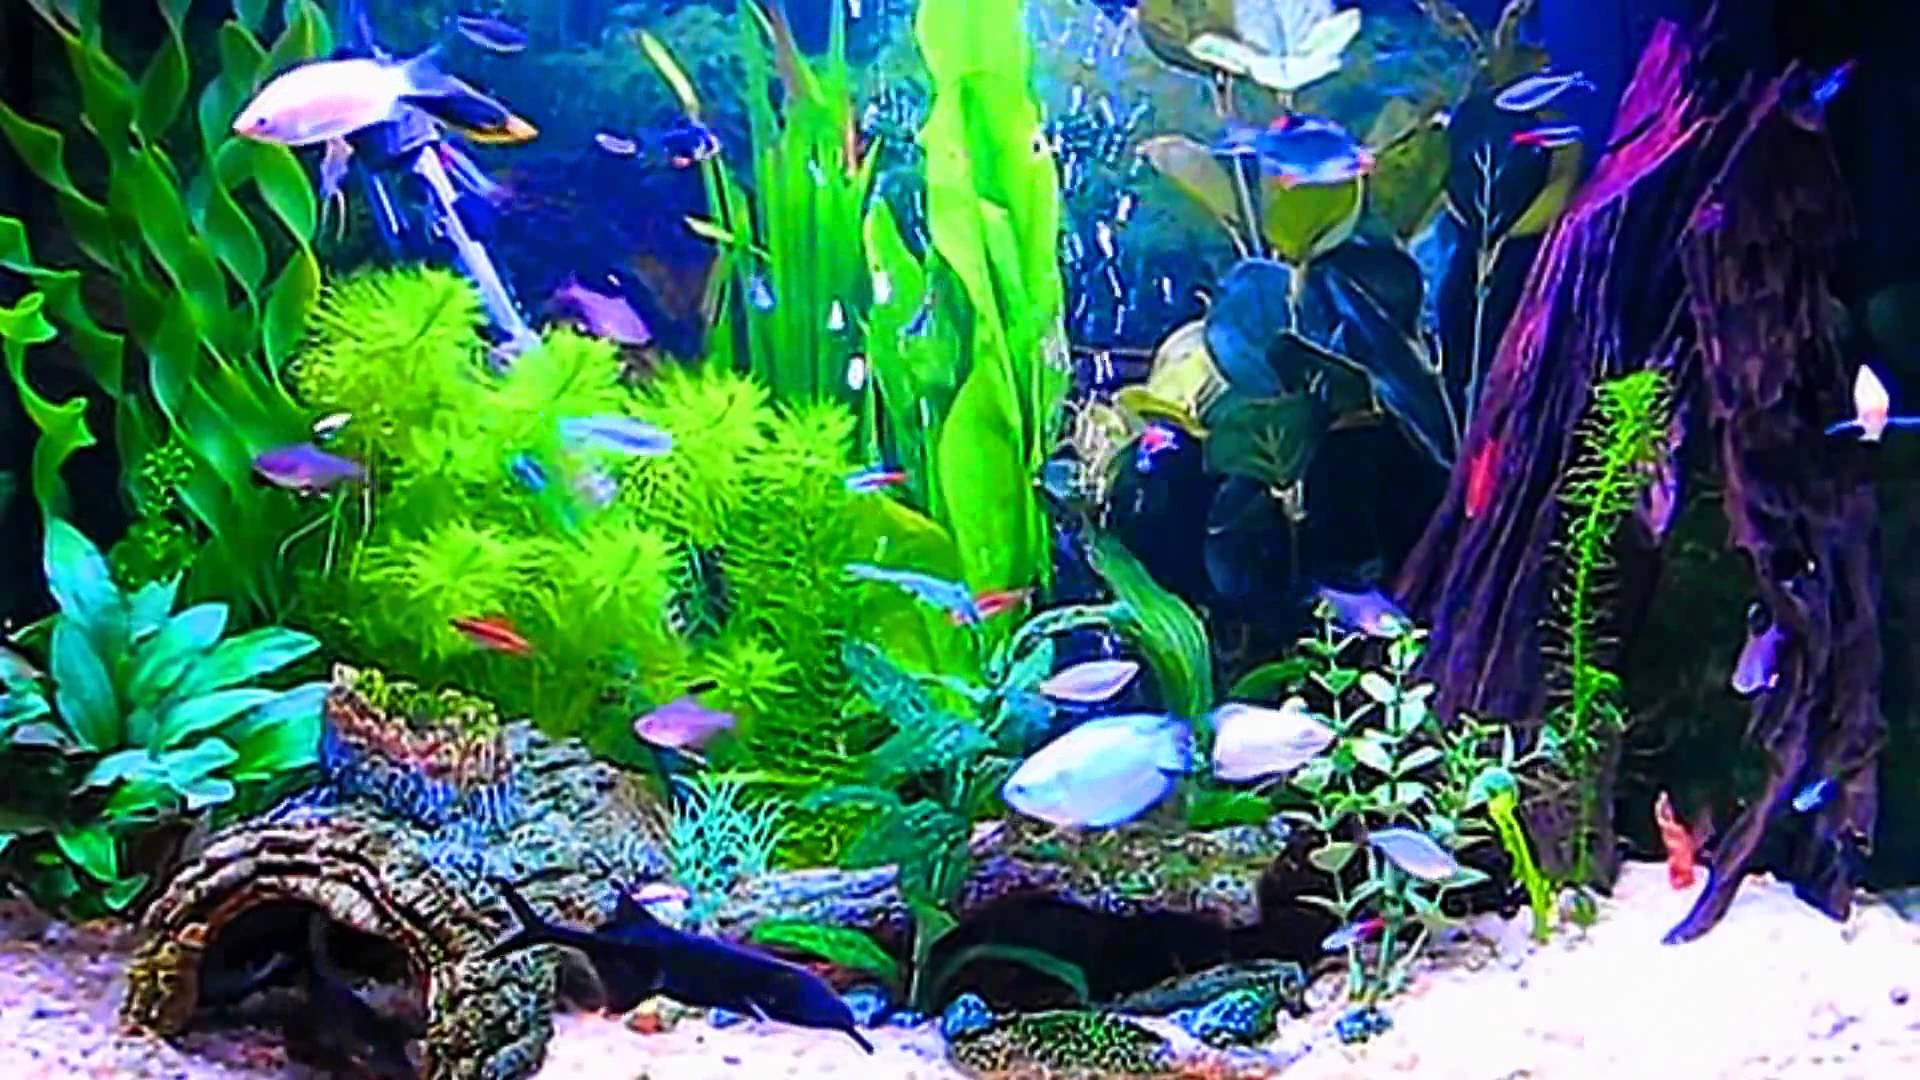 Dream Aquarium Screensaver For Windows 7